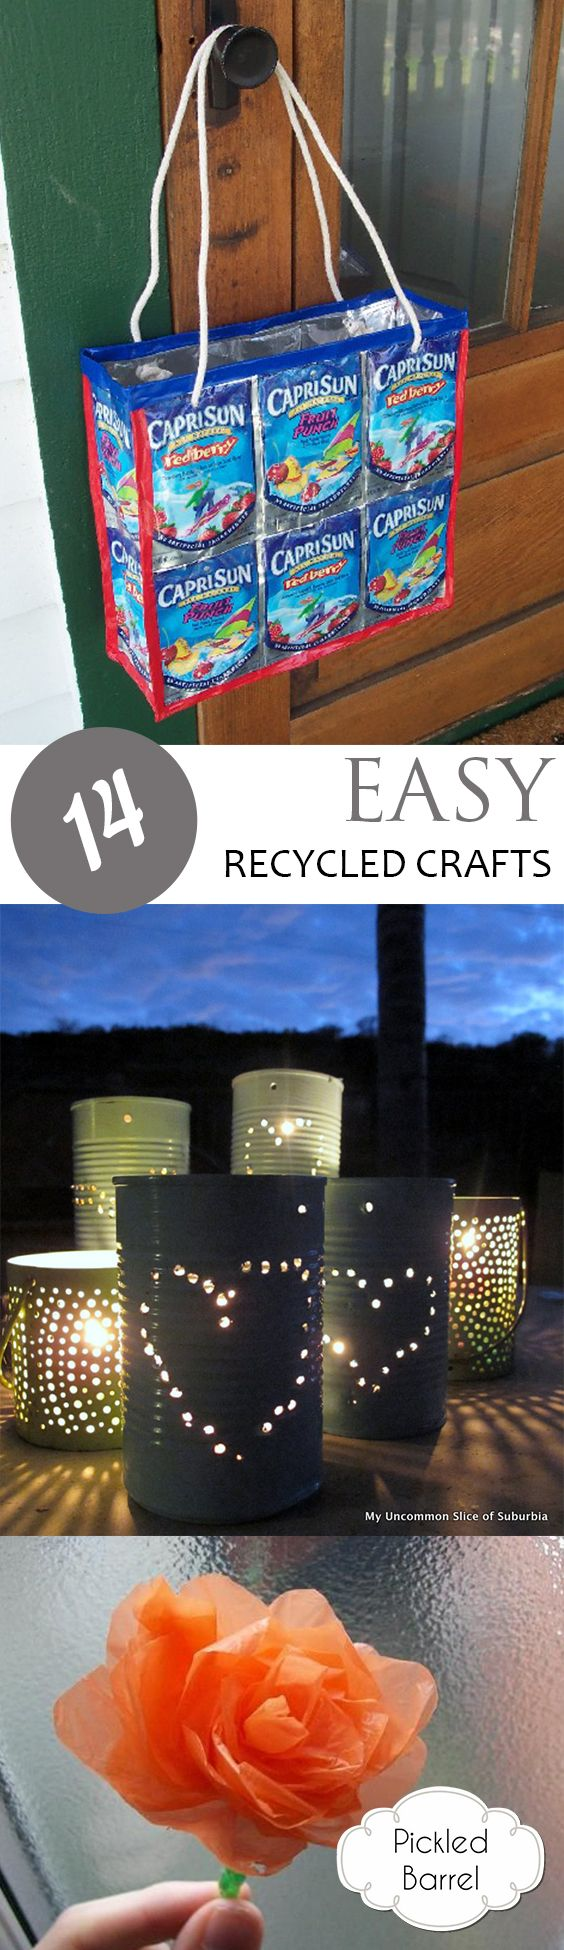 Kids Craft Project Ideas Part - 37: Recycled Crafts, Repurpose Projects, Craft Projects, Craft Project Ideas,  Easy Craft Projects